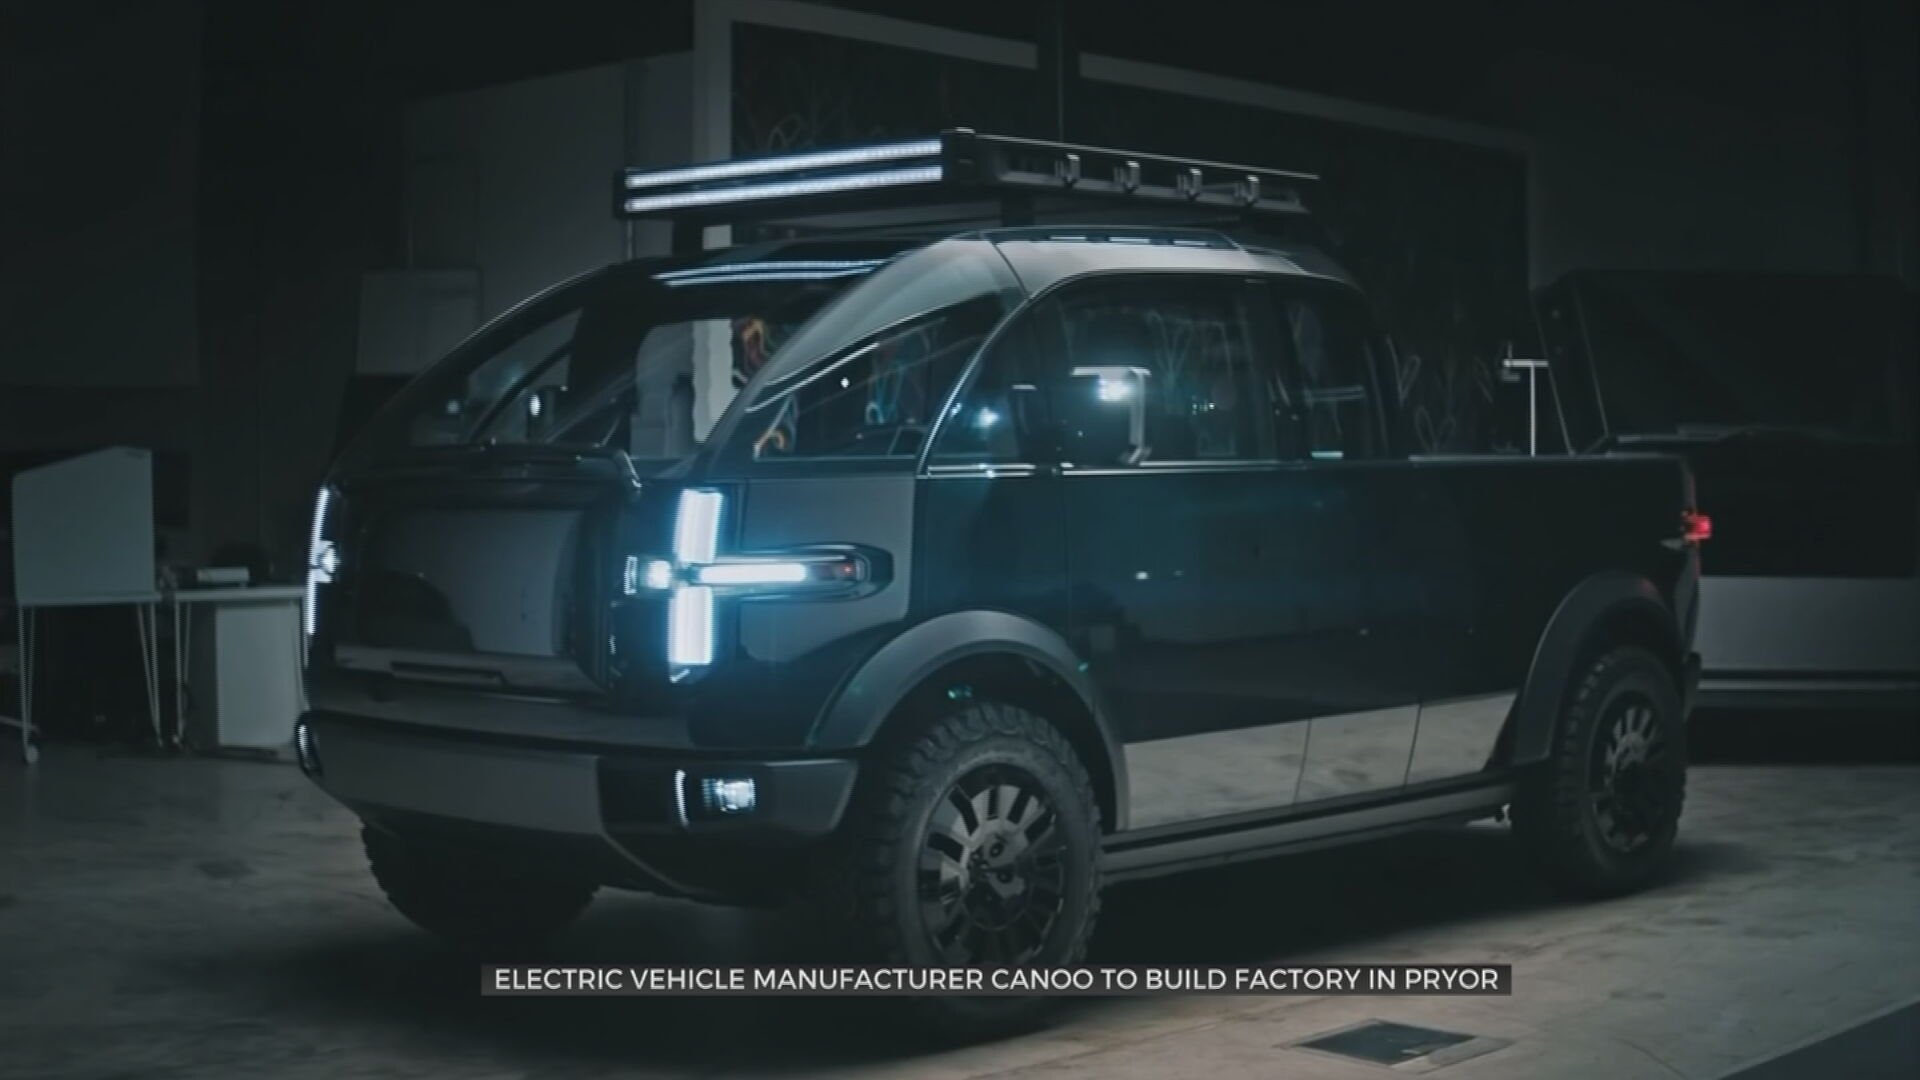 Electric Vehicle Manufacturer Canoo To Bring 2,000 Jobs To Oklahoma